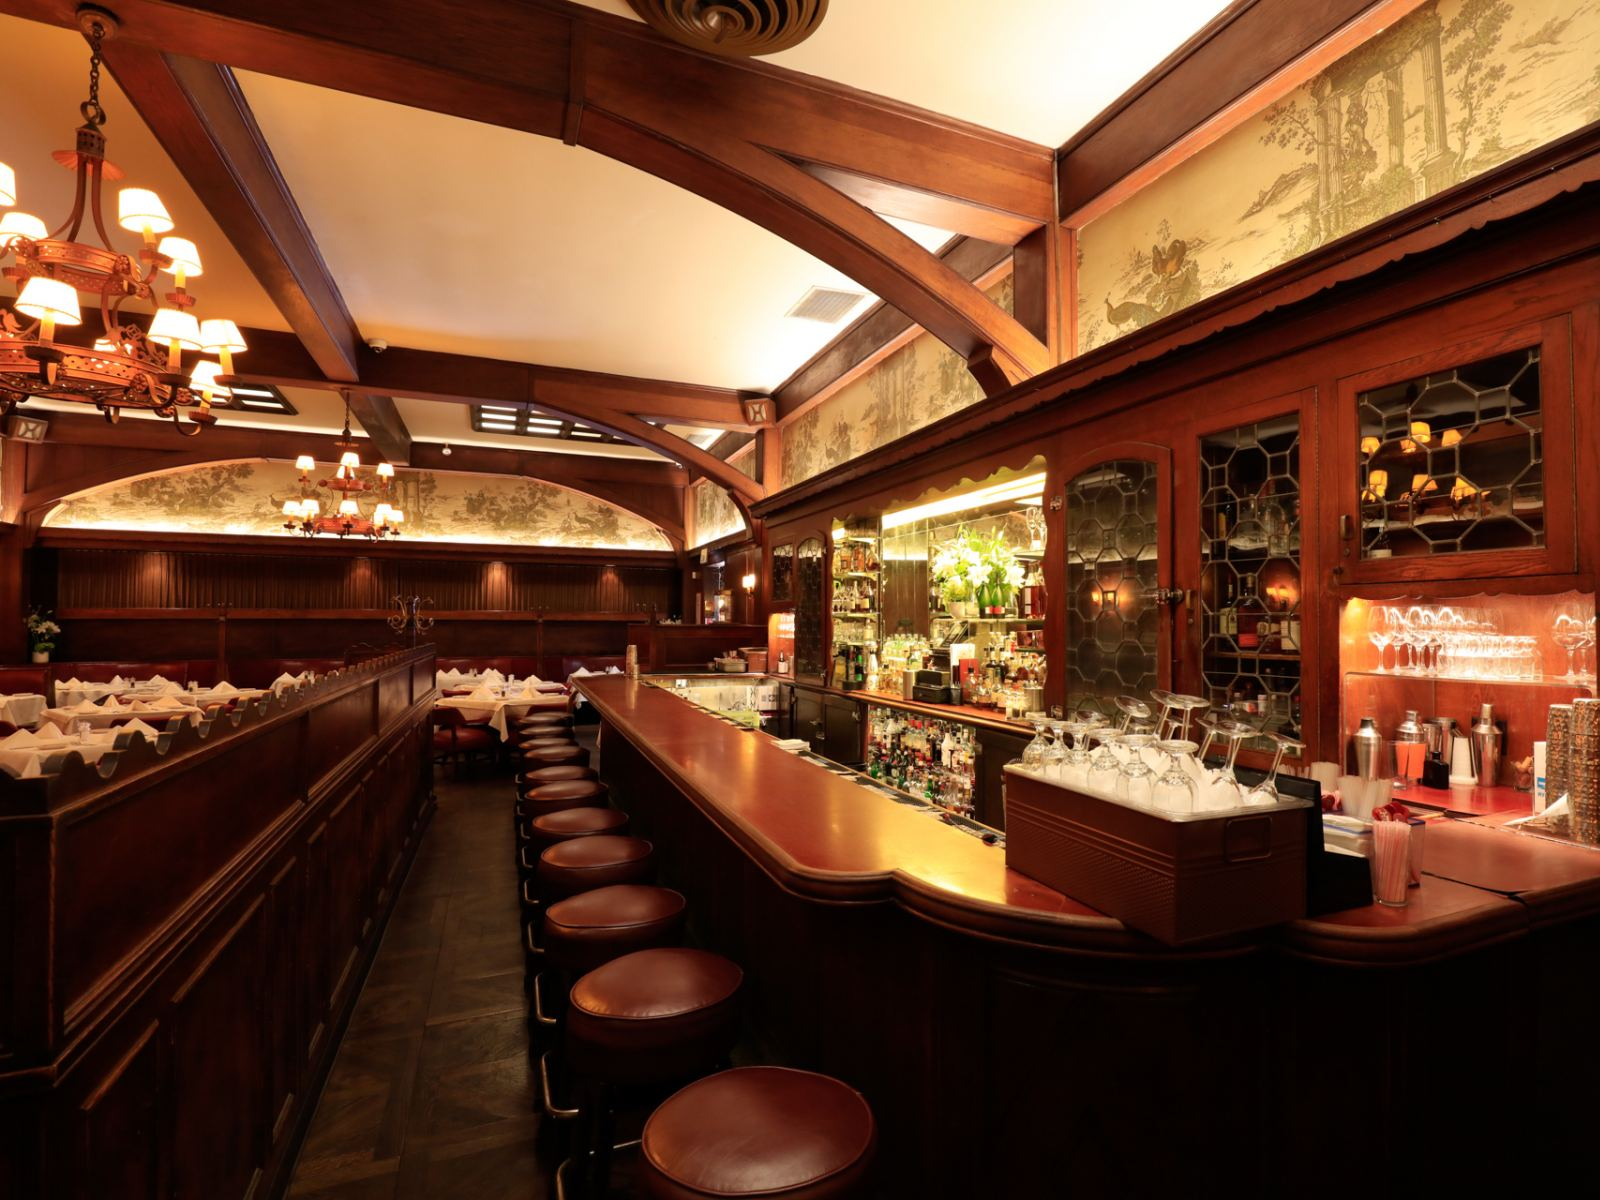 The bar at Musso & Frank Grill | Photo: Yuri Hasegawa